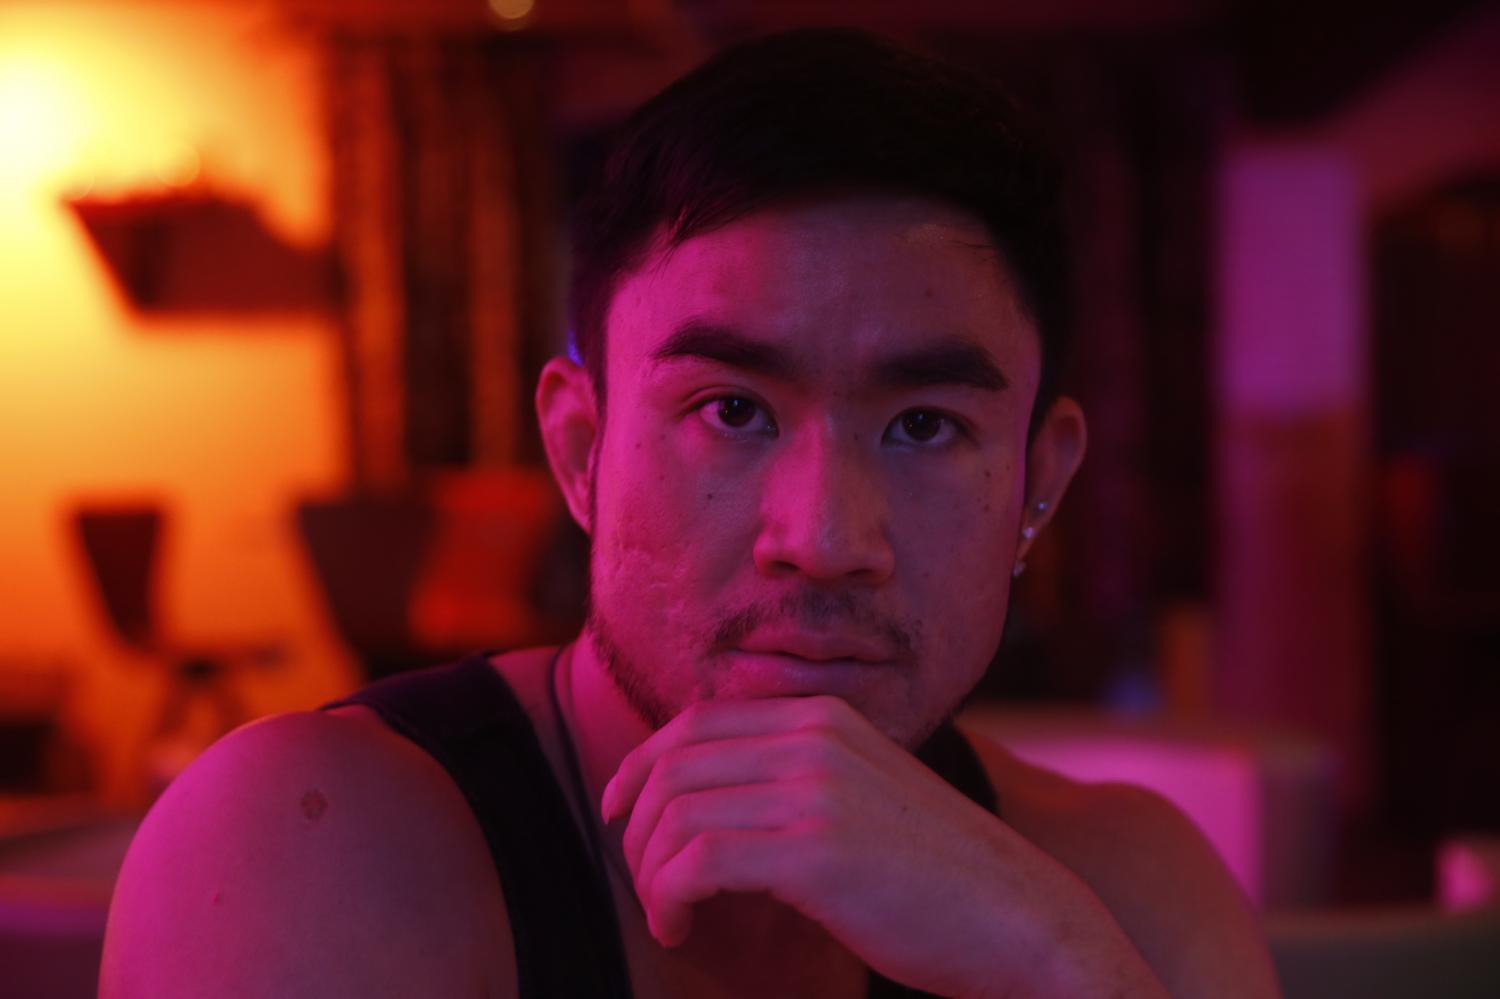 Pawan Leewajanakun, 33, a male prostitute and sex-worker rights activist, boosted his income by taking in private customers via an online platform, rather than relying solely on the bar in Patpong.